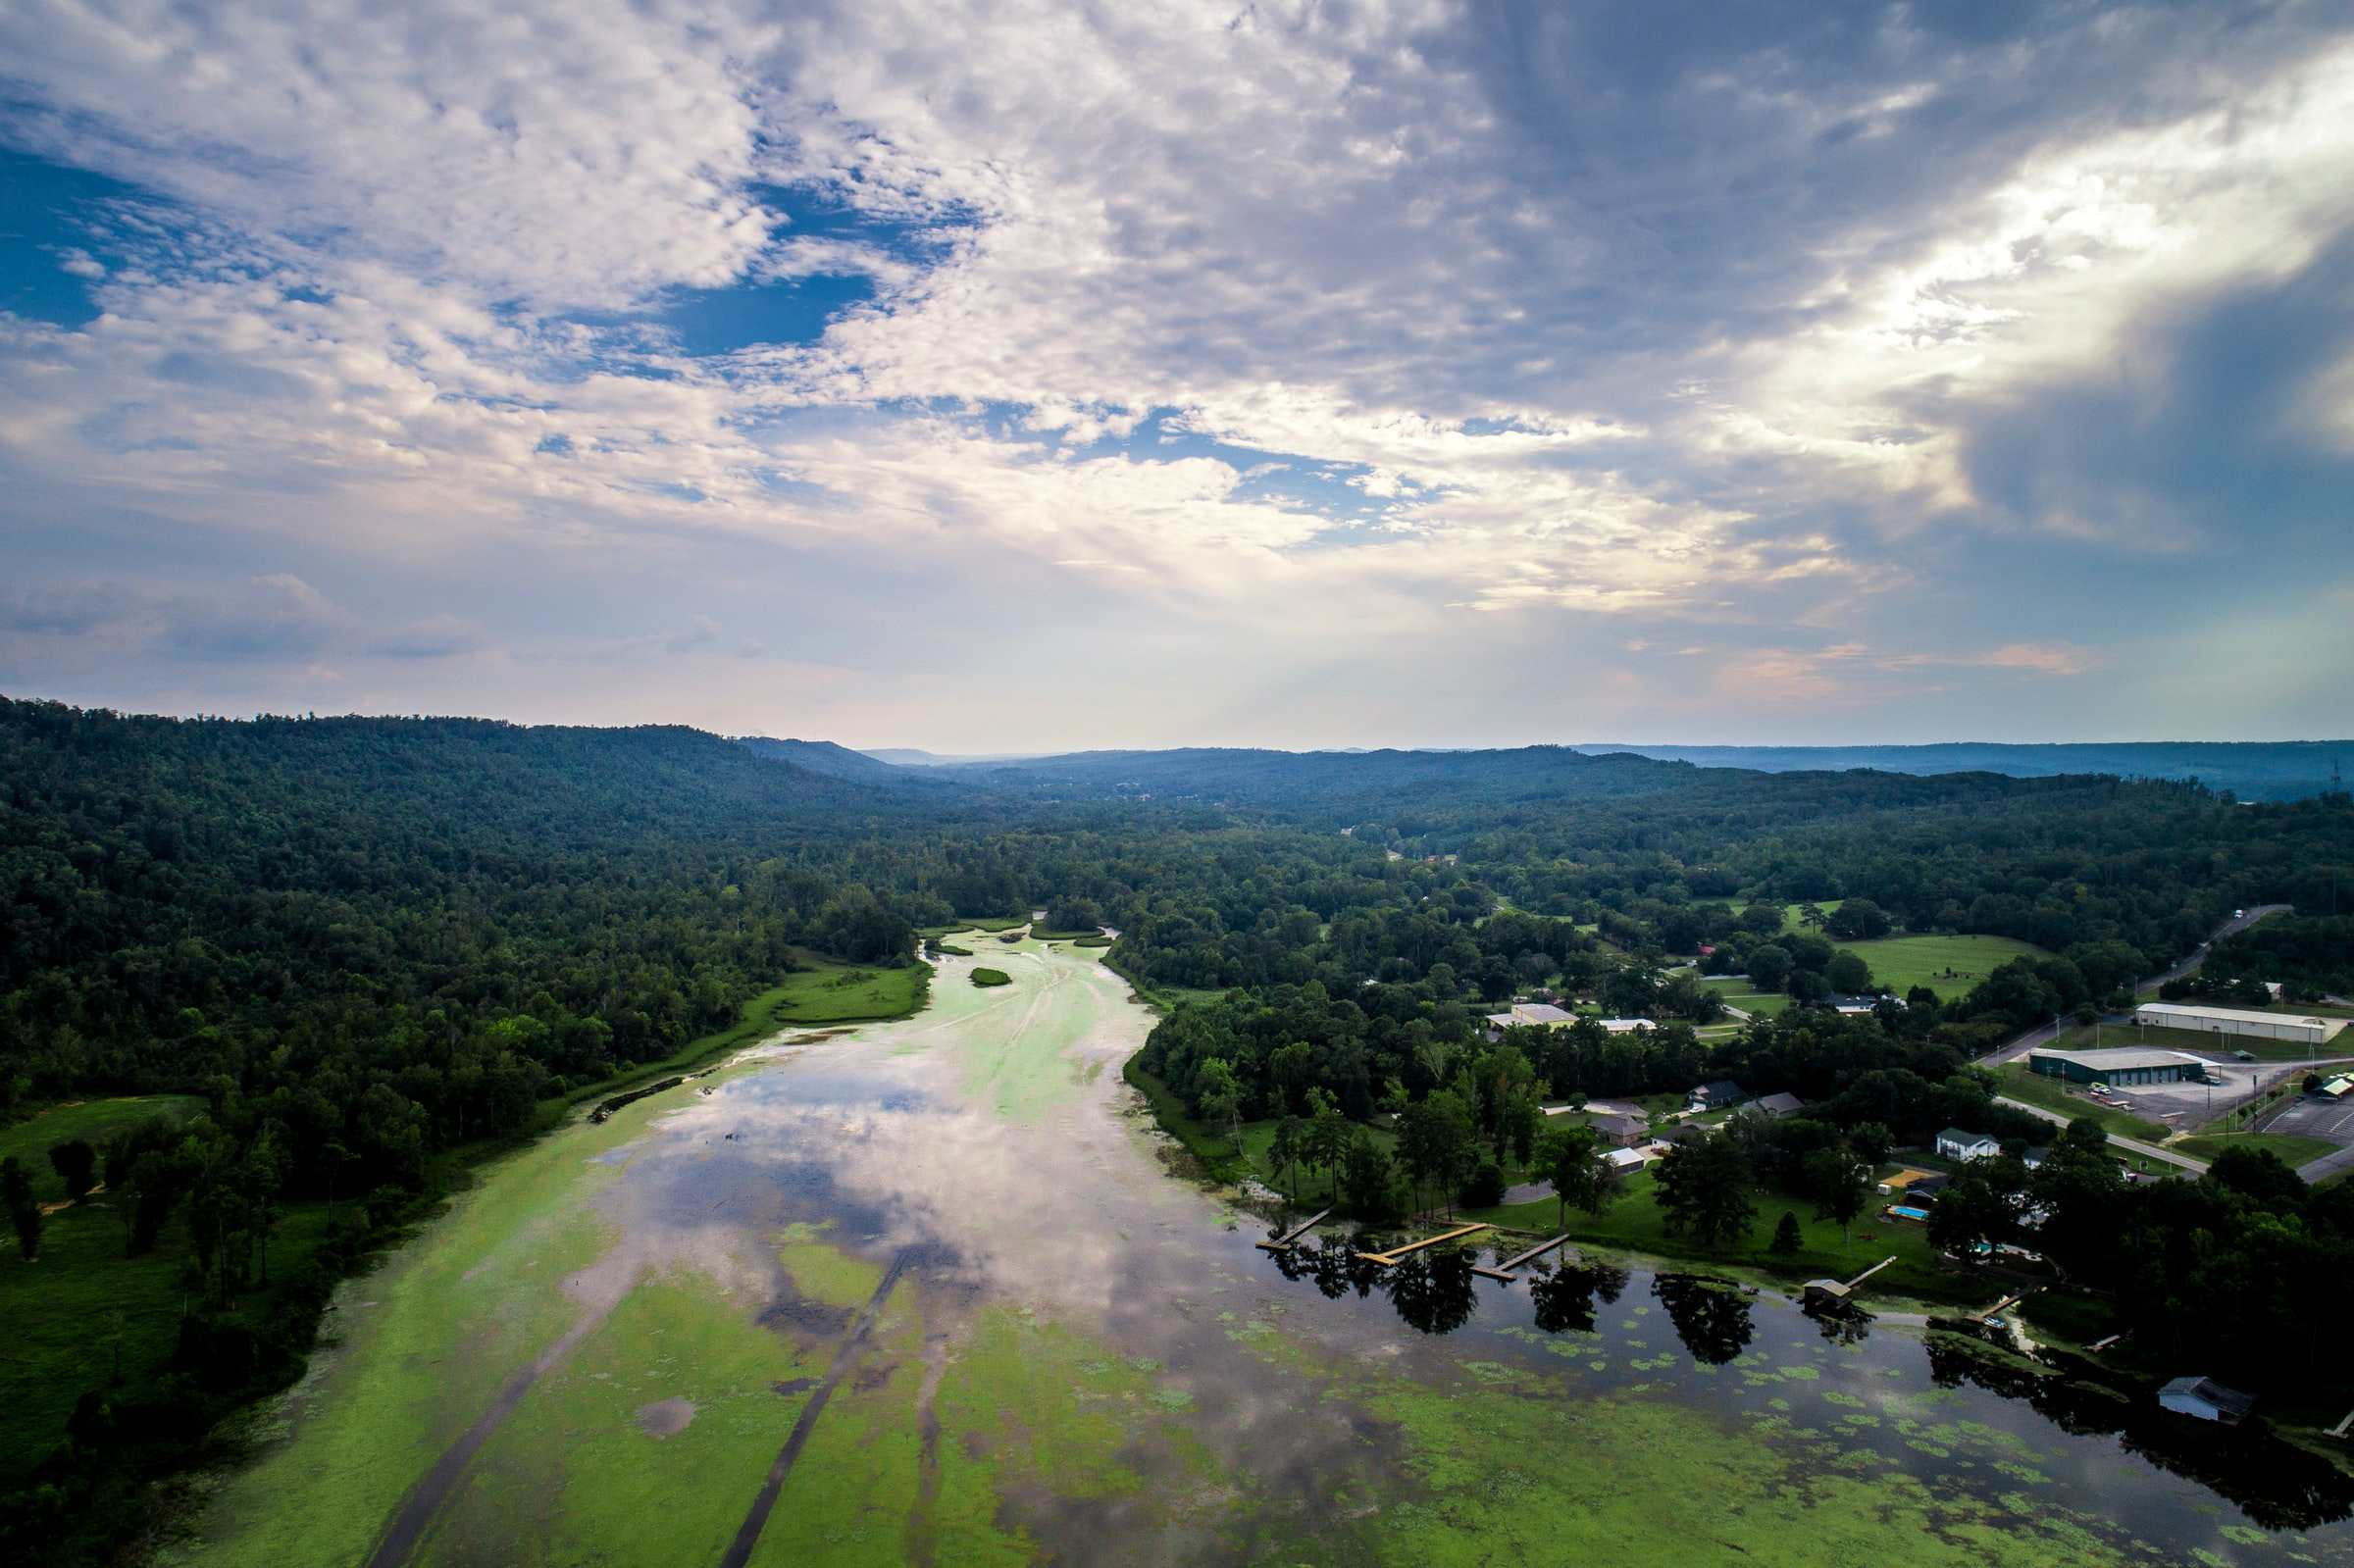 Revealed – Top 8 Destinations For Camping In Alabama